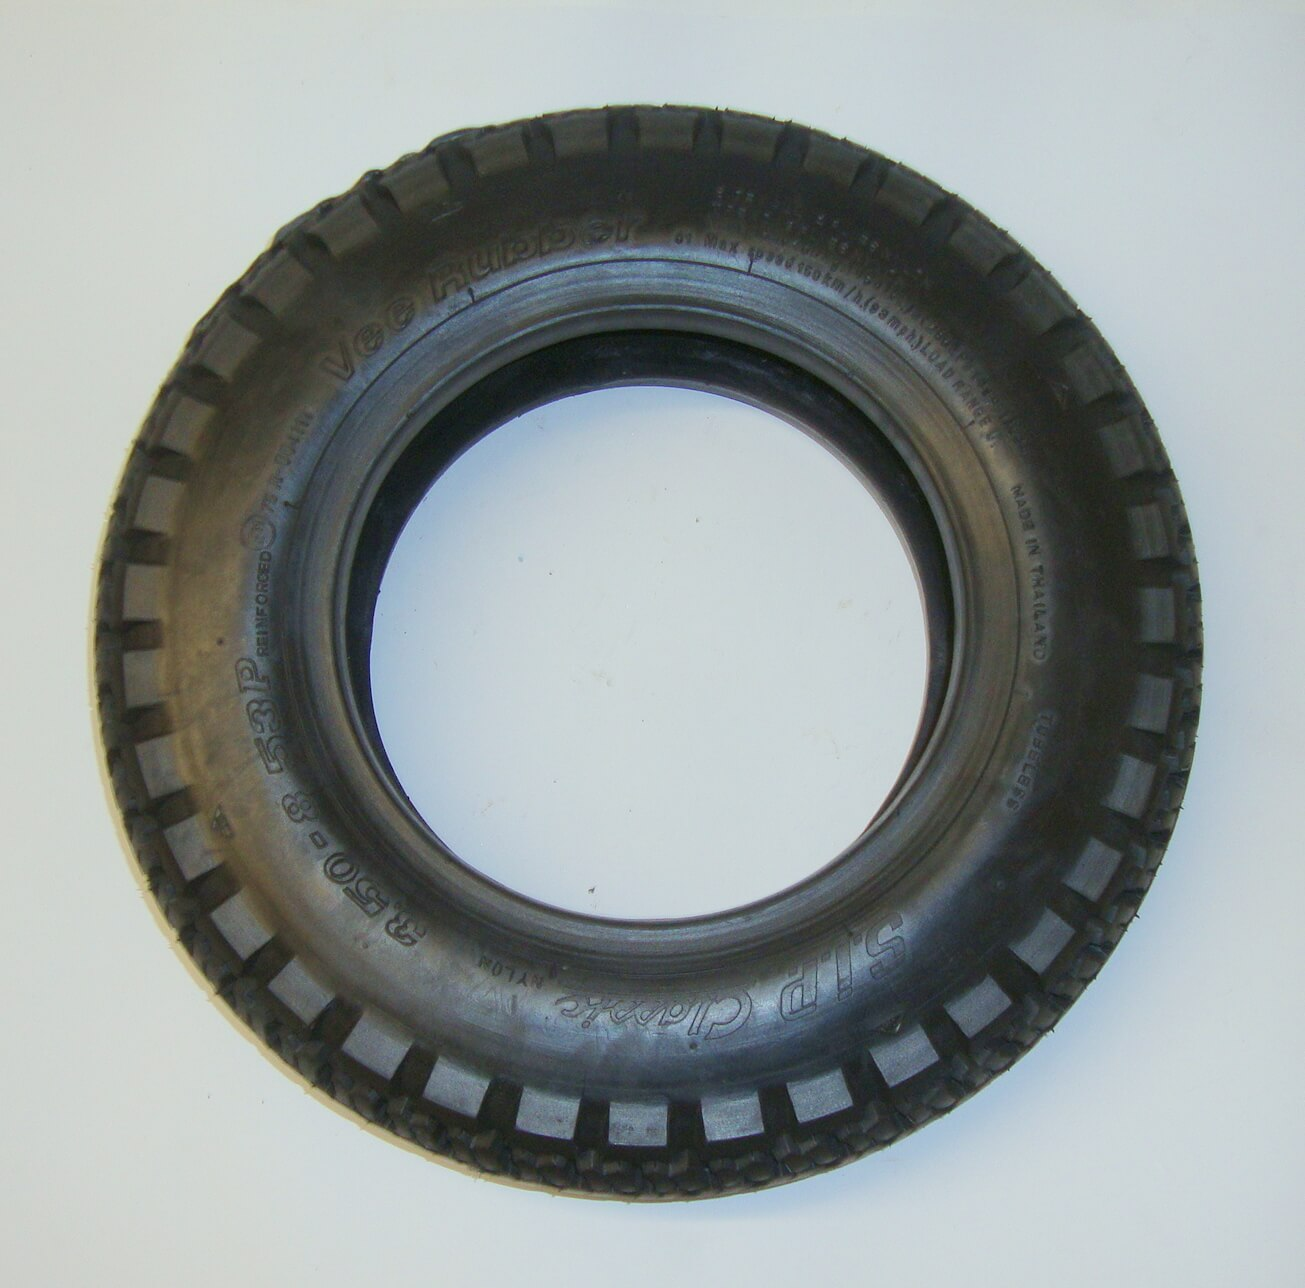 Tire, VEE RUBBER, SIP Classic, 3.50 x 8 53 P TL/TT reinforced ECE-R75 up to 150 km/h